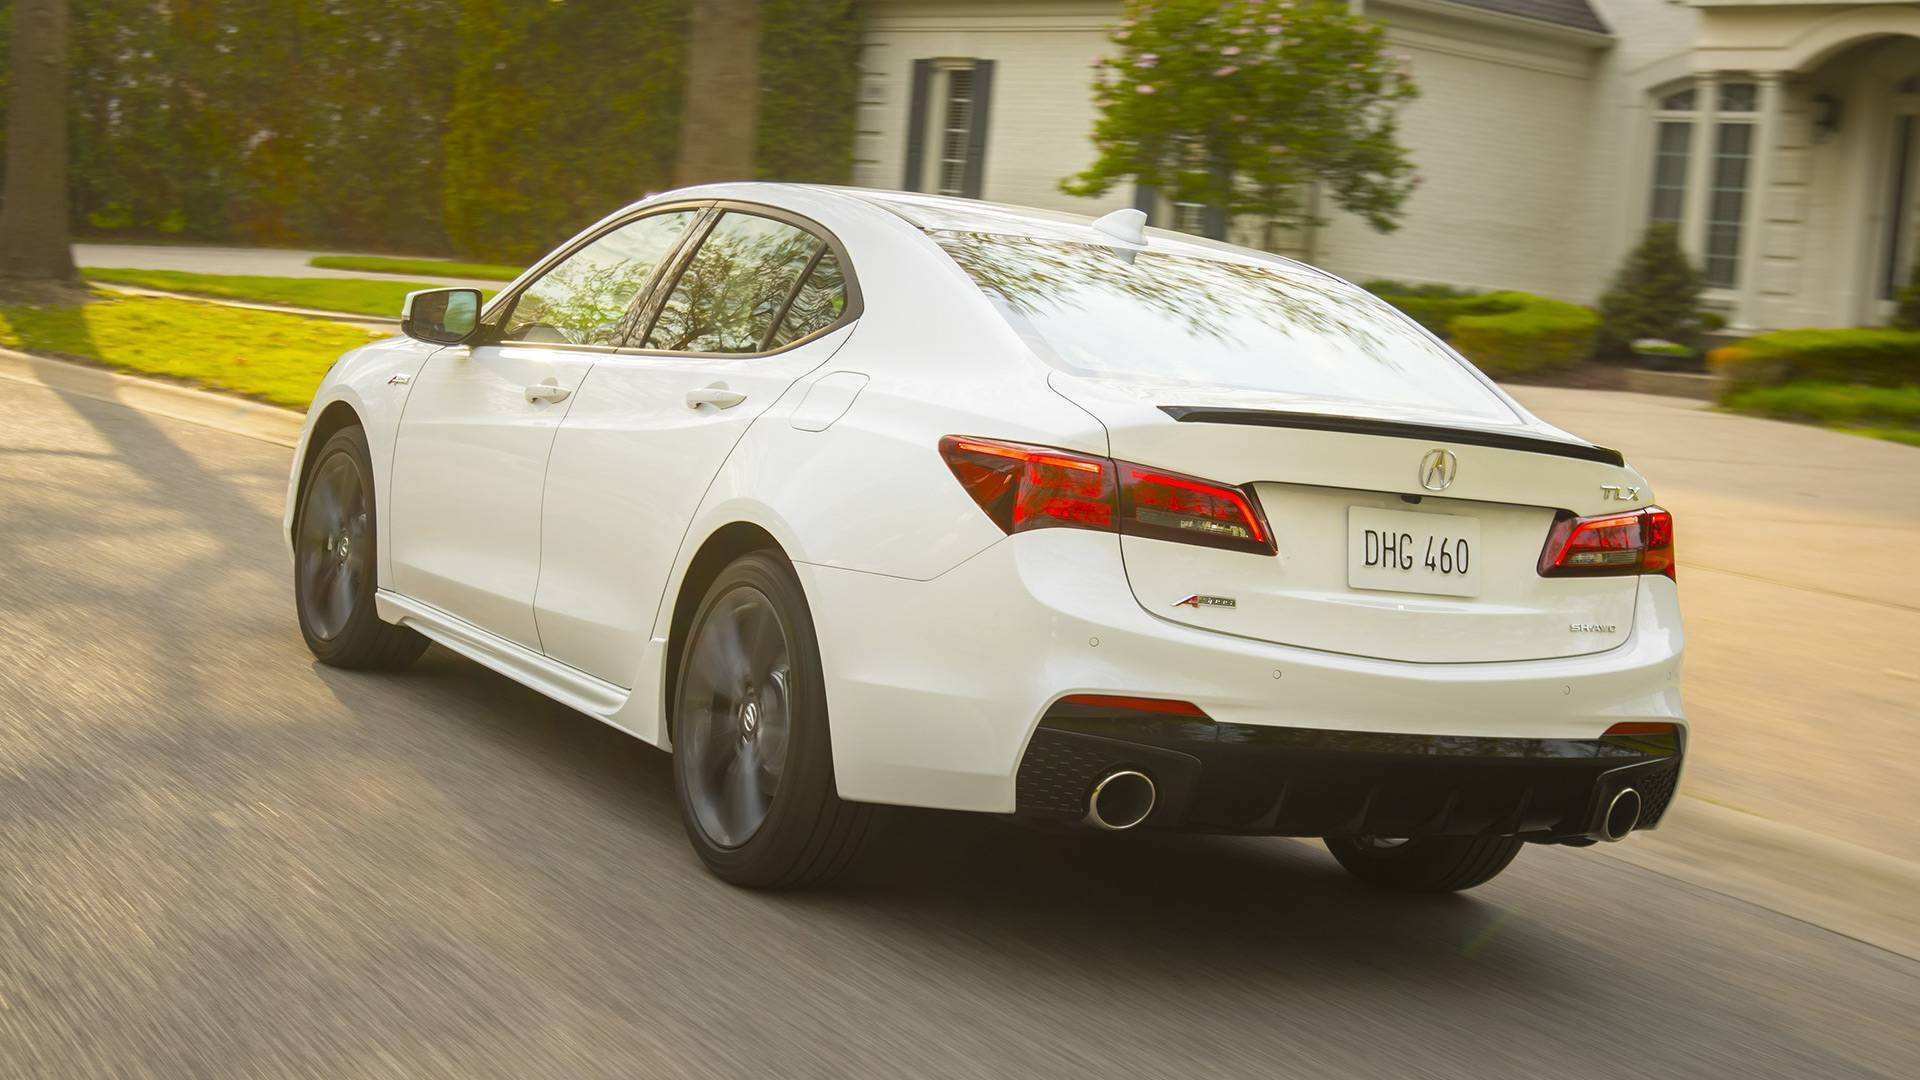 89 Gallery of Acura Tlx 2019 Review Interior Prices for Acura Tlx 2019 Review Interior